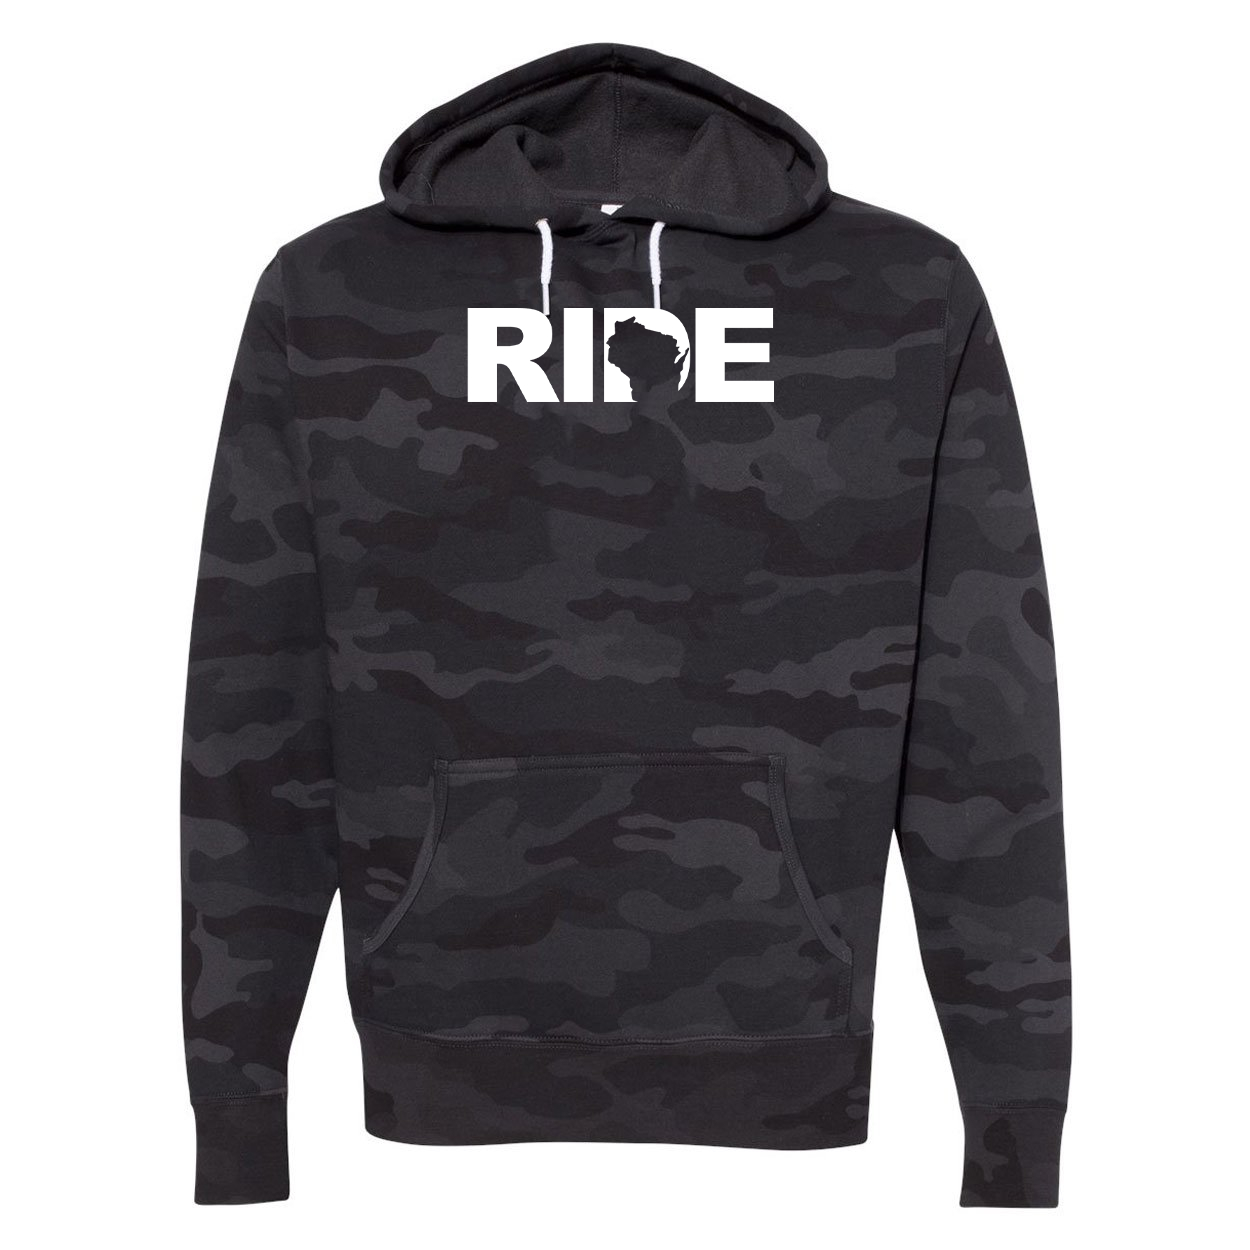 Ride Wisconsin Classic Unisex Hooded Sweatshirt Black Camo (White Logo)